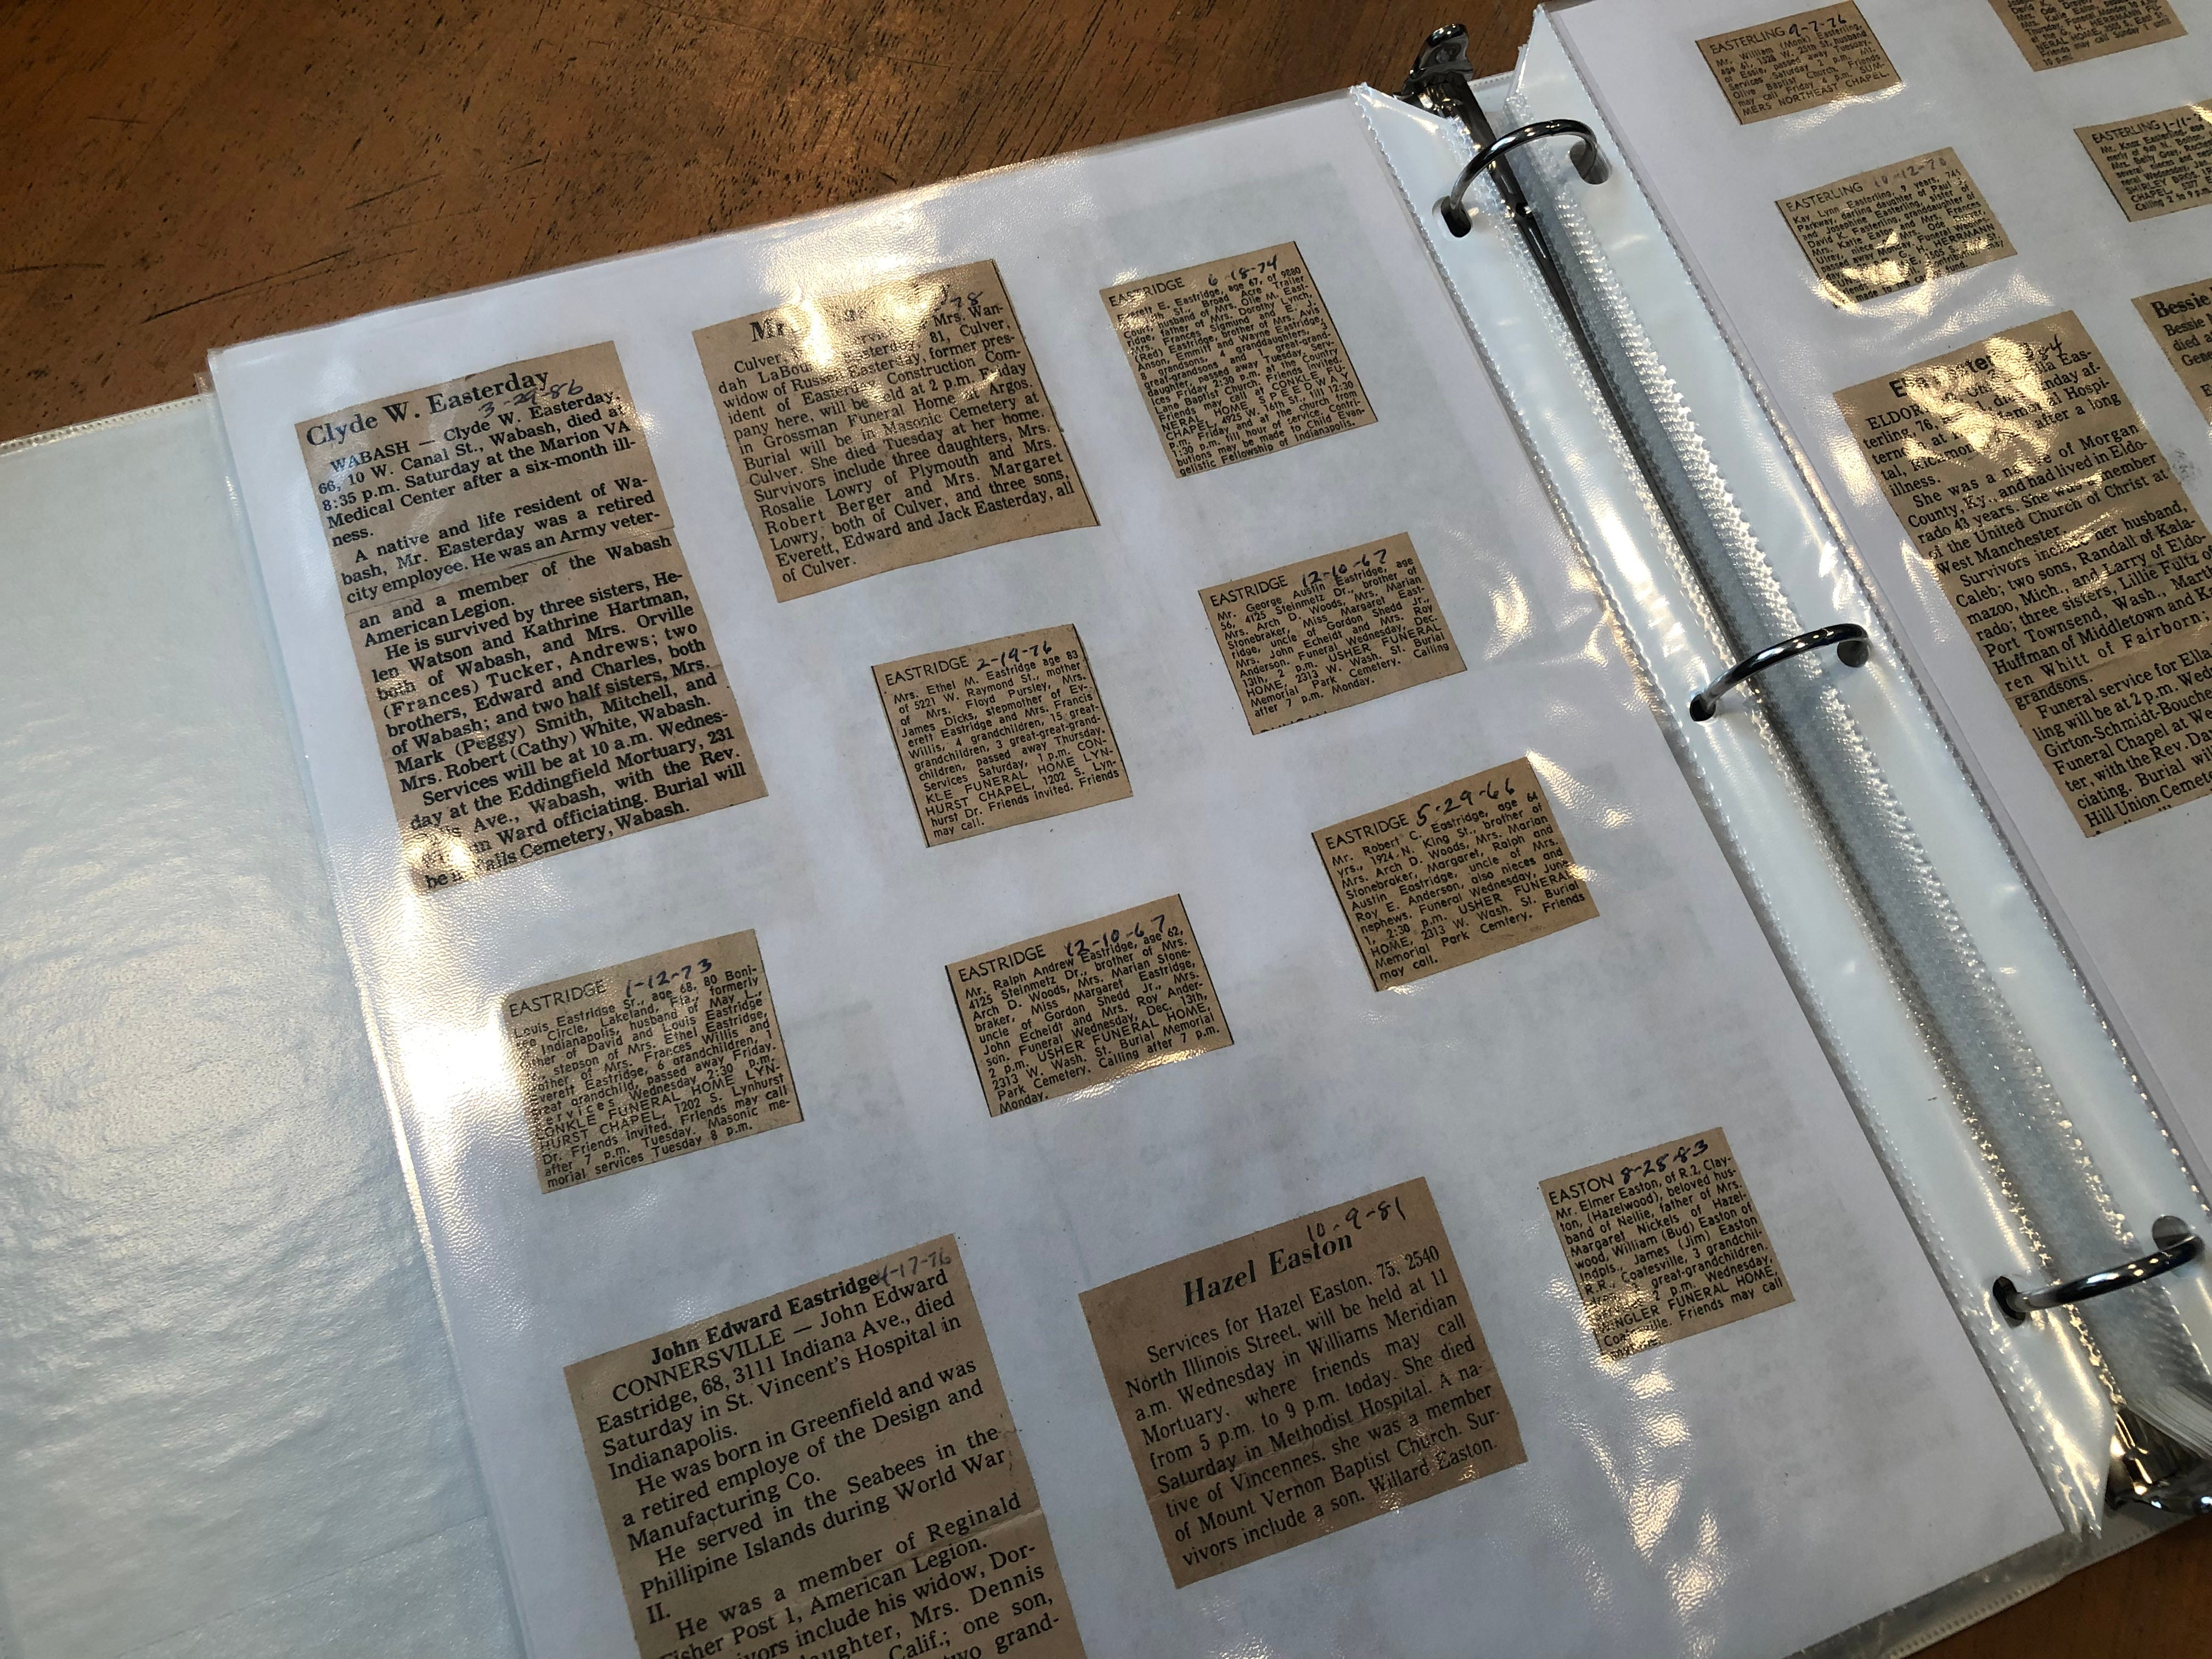 Among the items available for public use at the Wayne County Genealogical Society are scrapbooks filled with obituaries.